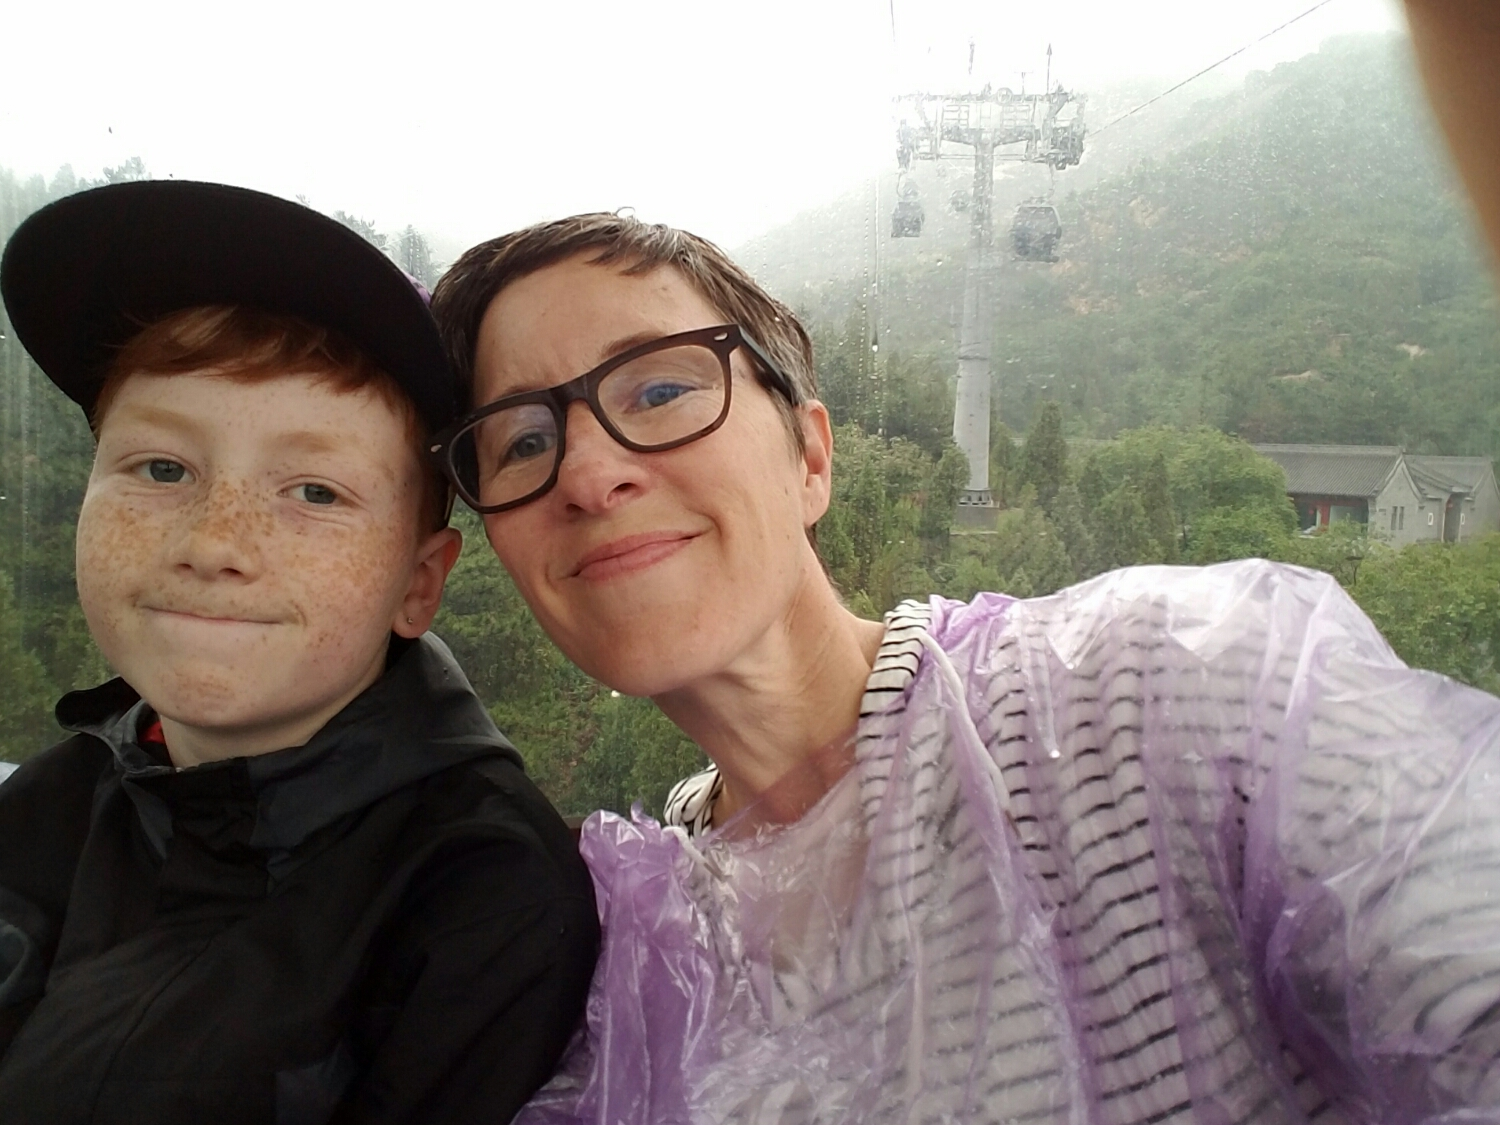 This will serve as a placeholder until I can upload the video of our journey back down the mountain in a suspended cable car. In the video you can hear us screaming. In fear or delight. Unsure.